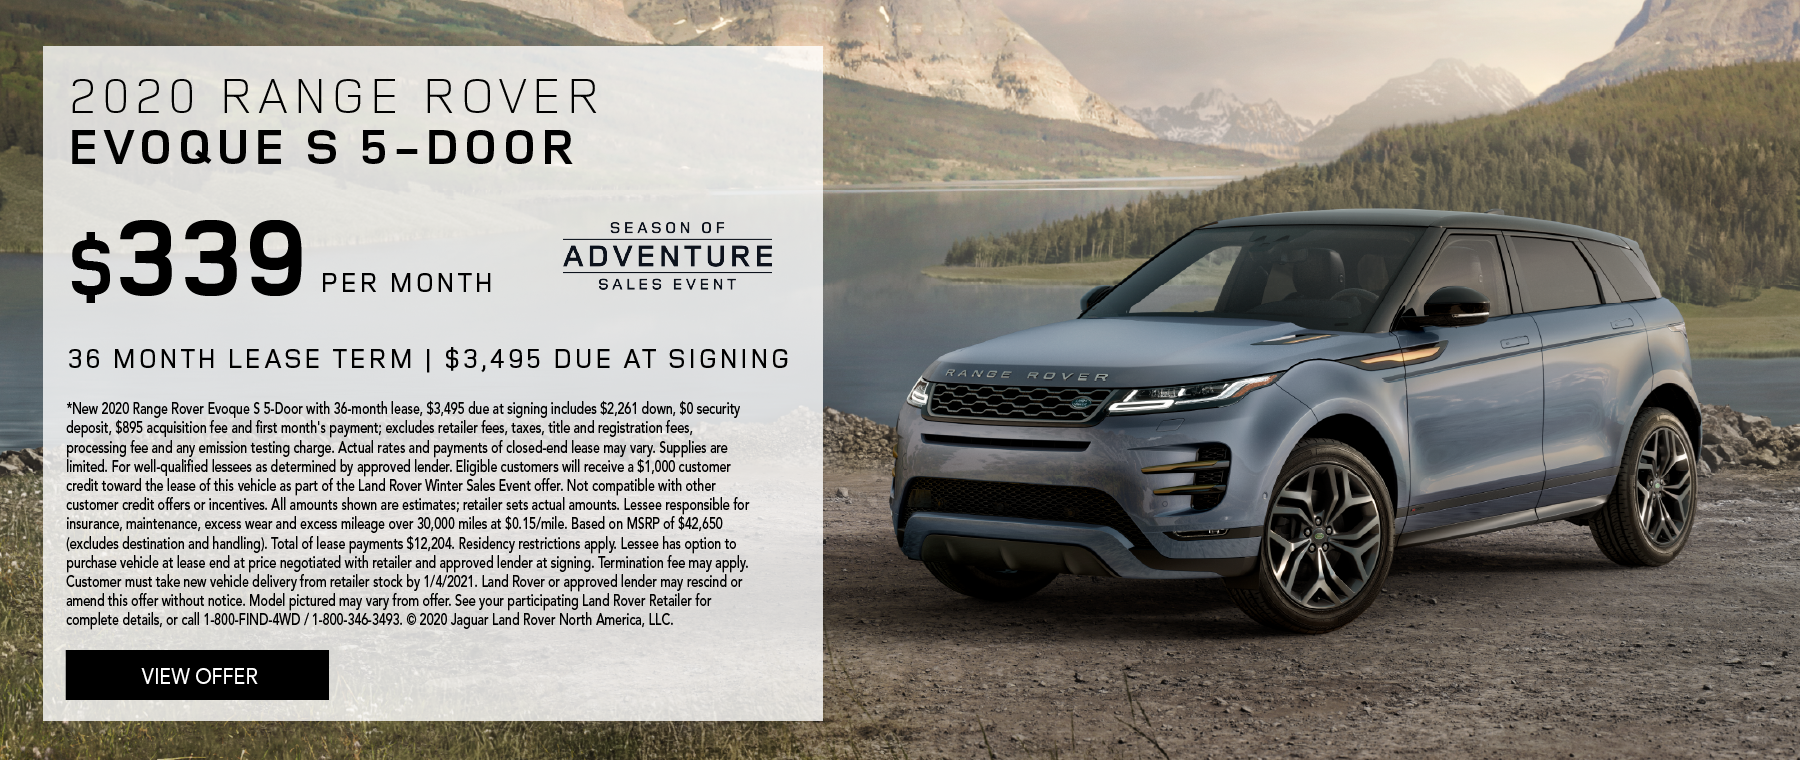 2020 RANGE ROVER EVOQUE S 5-DOOR. $339 PER MONTH. 36 MONTH LEASE TERM. $3,495 CASH DUE AT SIGNING. $0 SECURITY DEPOSIT. 10,000 MILES PER YEAR. EXCLUDES RETAILER FEES, TAXES, TITLE AND REGISTRATION FEES, PROCESSING FEE AND ANY EMISSION TESTING CHARGE. INCLUDES $1,000 CUSTOMER CREDIT. ENDS 1/4/2020.